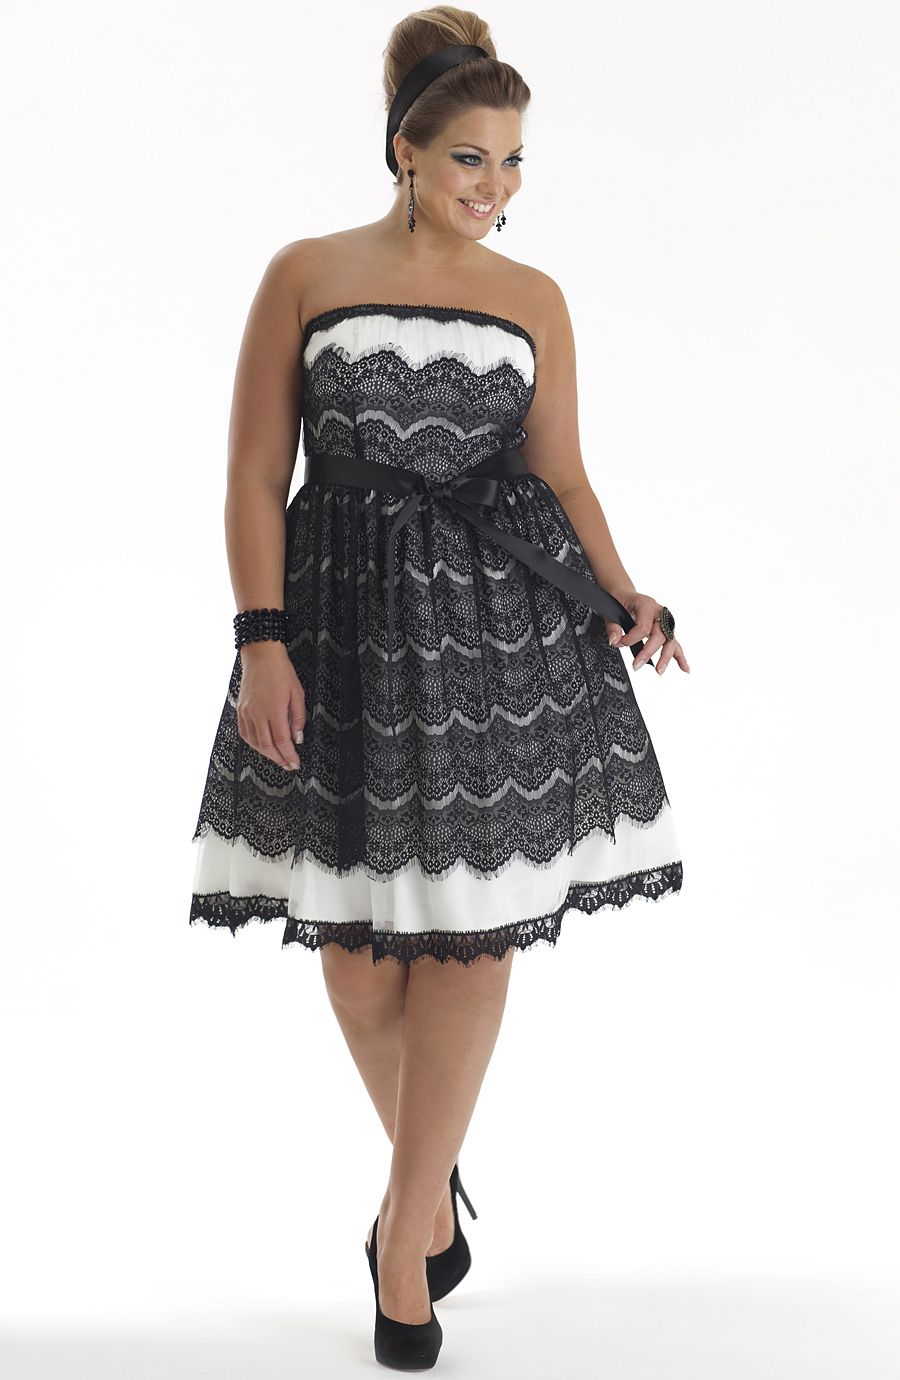 Plus+Size+Evening+Dresses  672ca00498aa